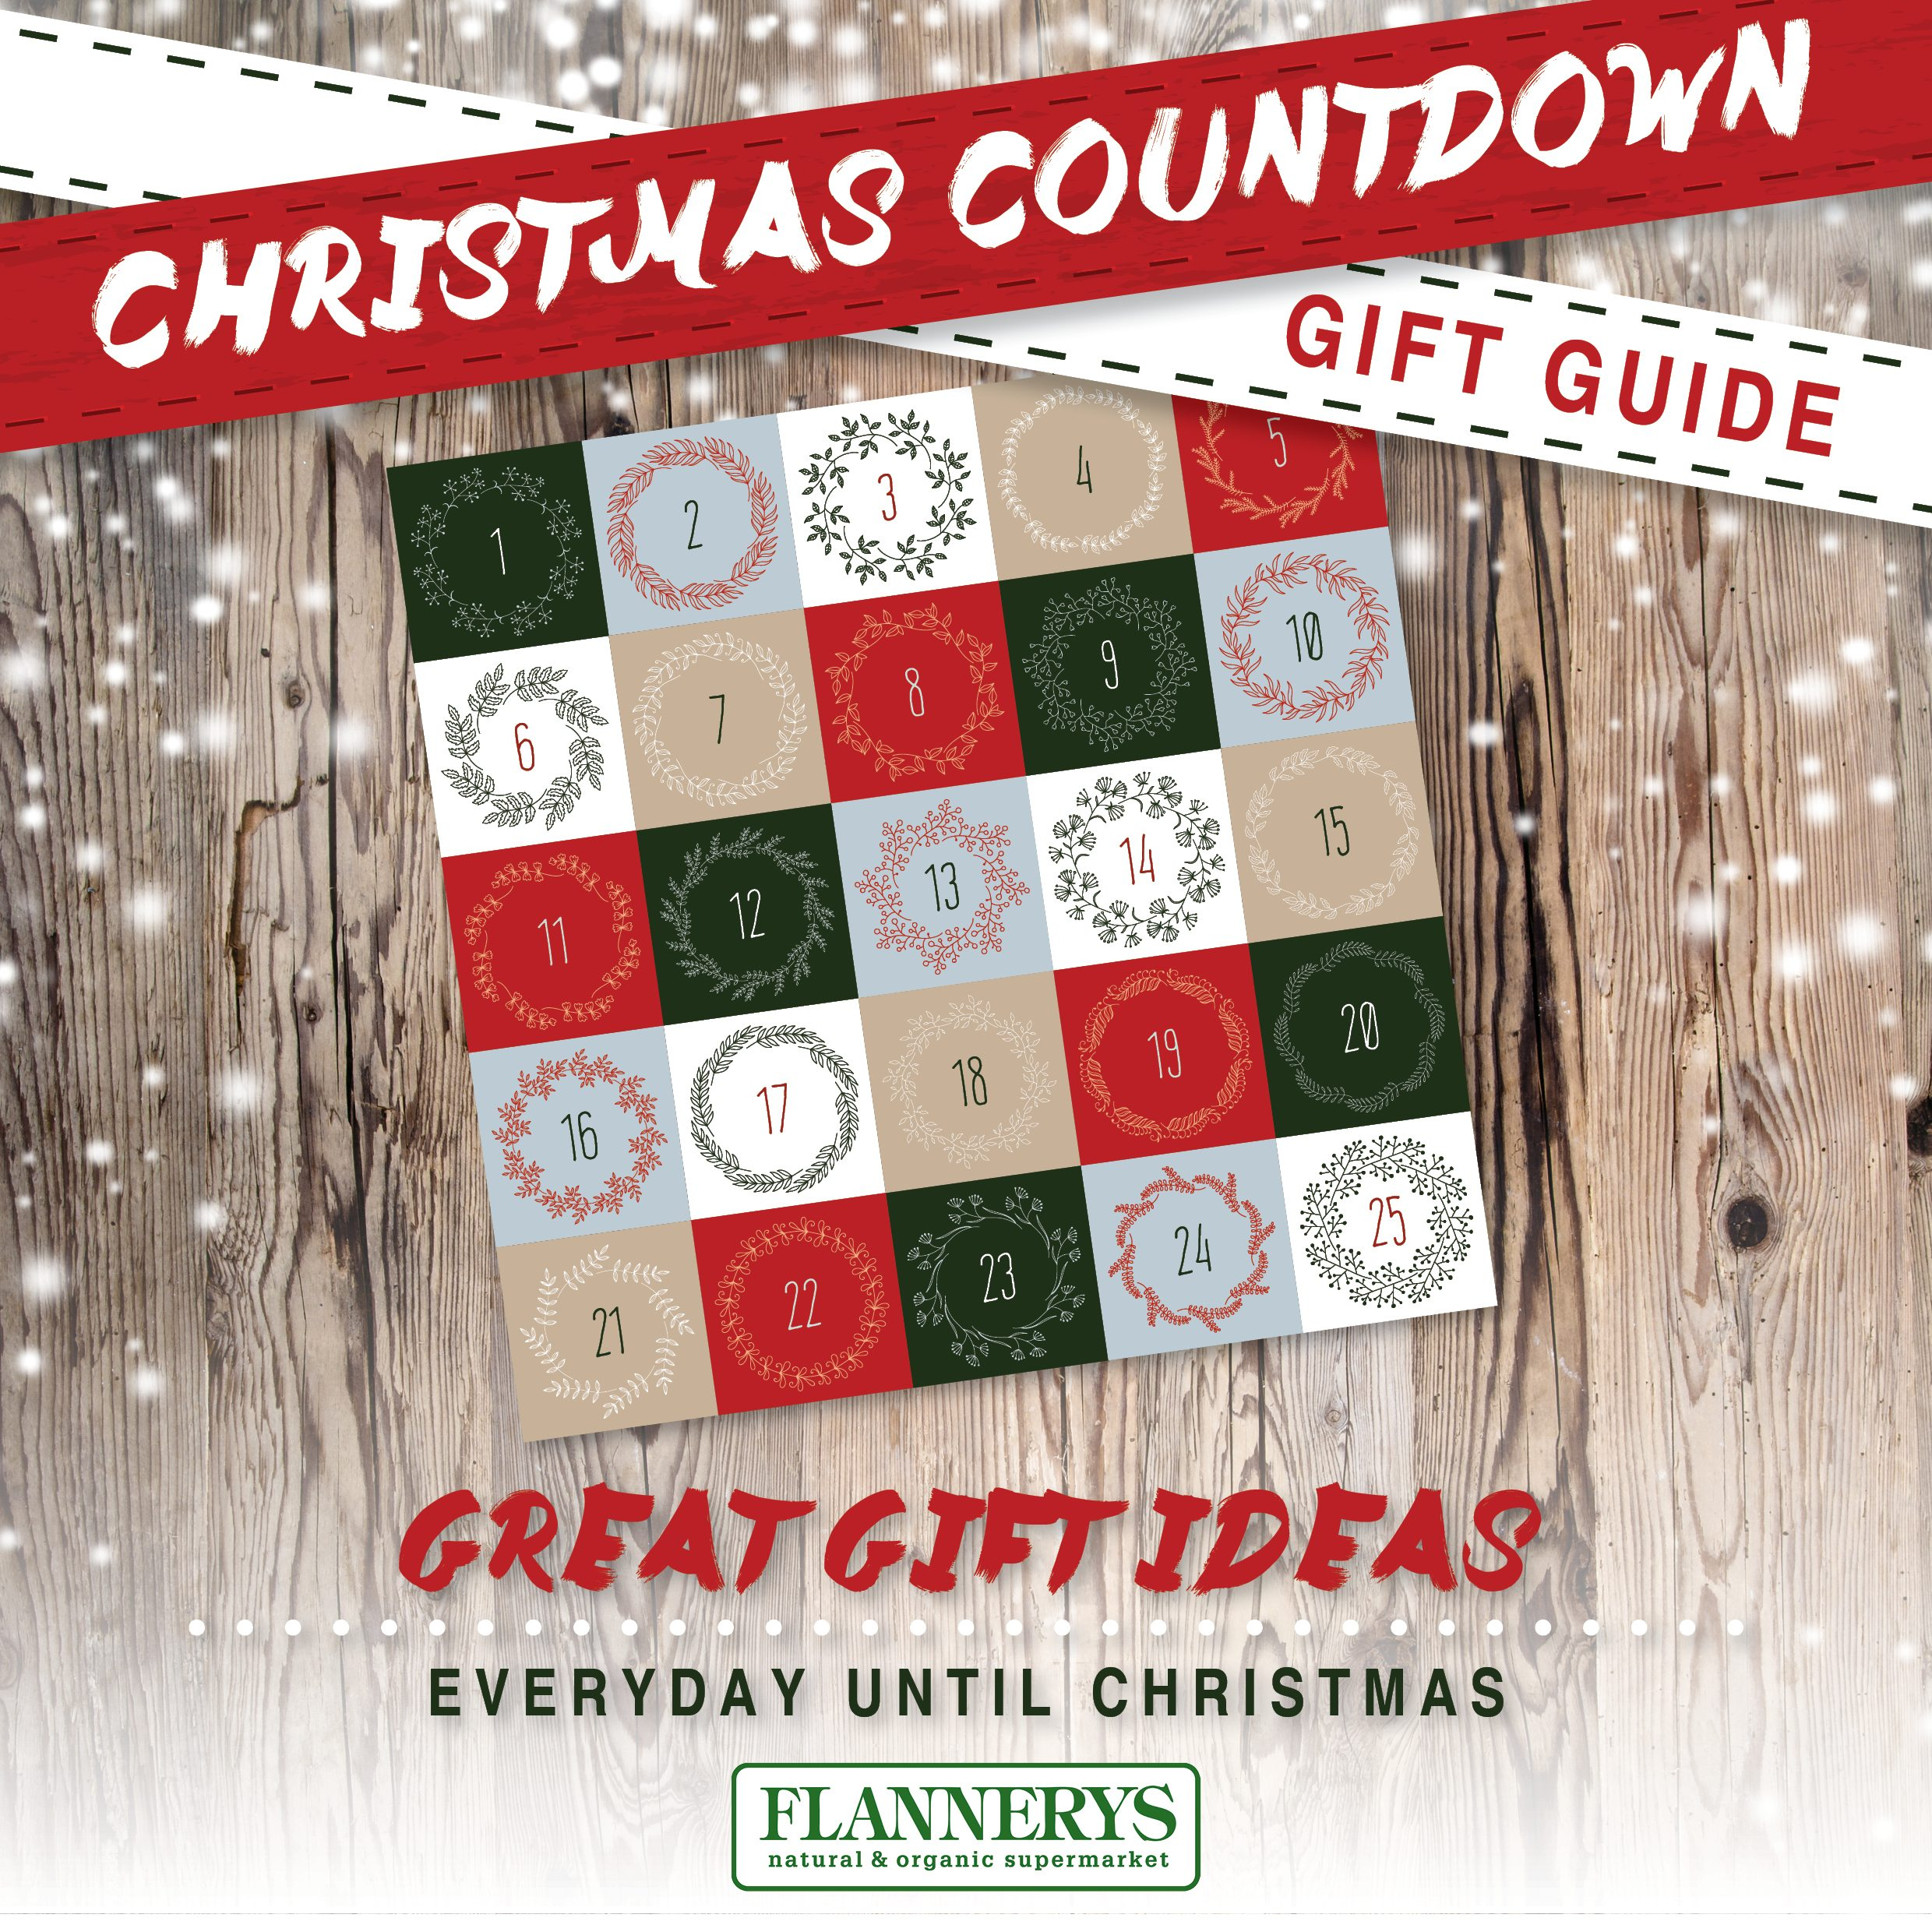 Christmas Countdown Gift Guide - Flannerys